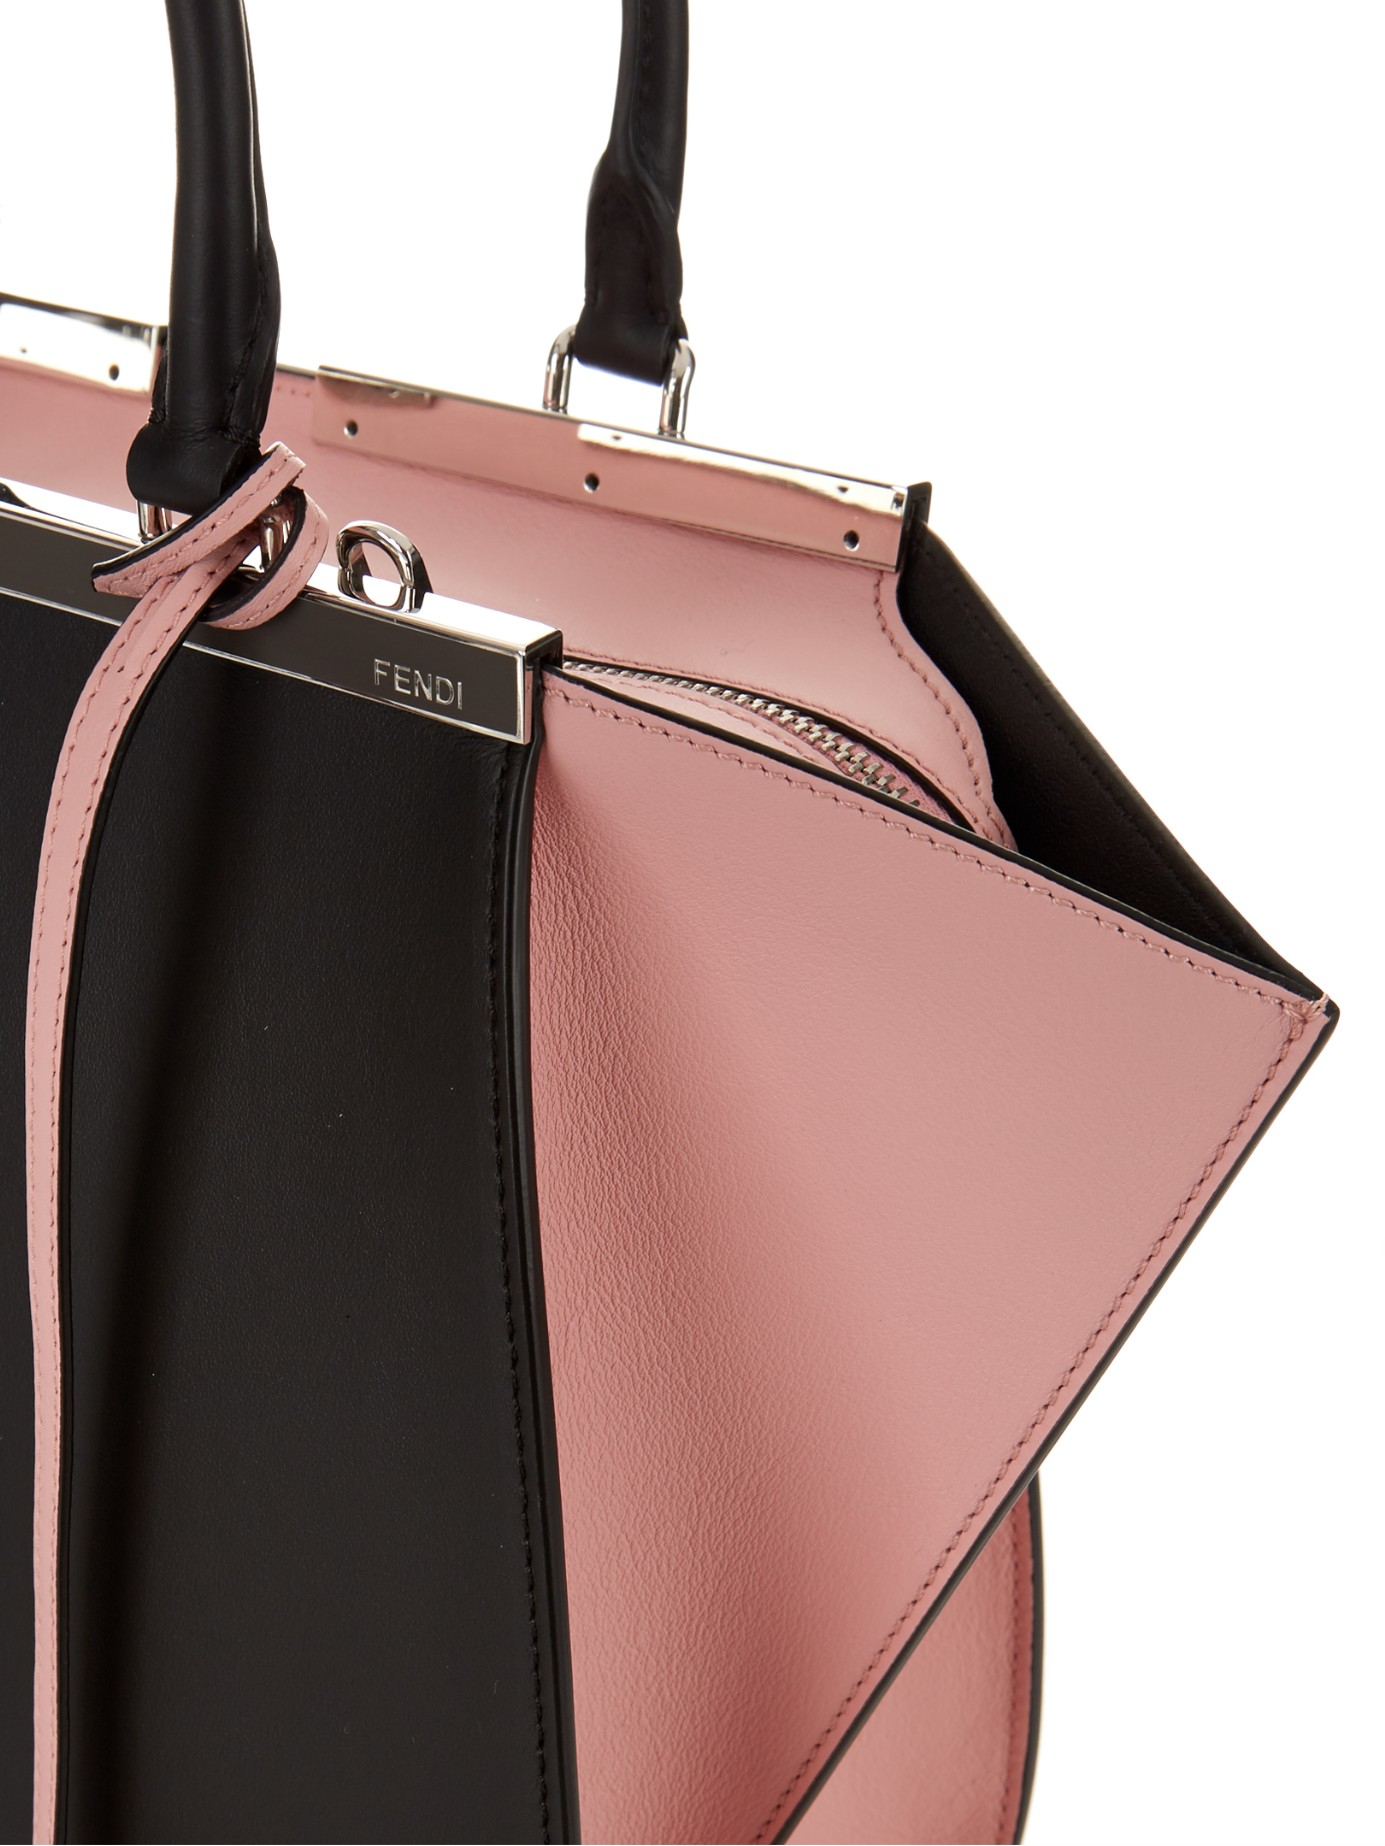 Fendi 3Jours Small Trapeze Leather Tote in Pink - Lyst 02cac55638724